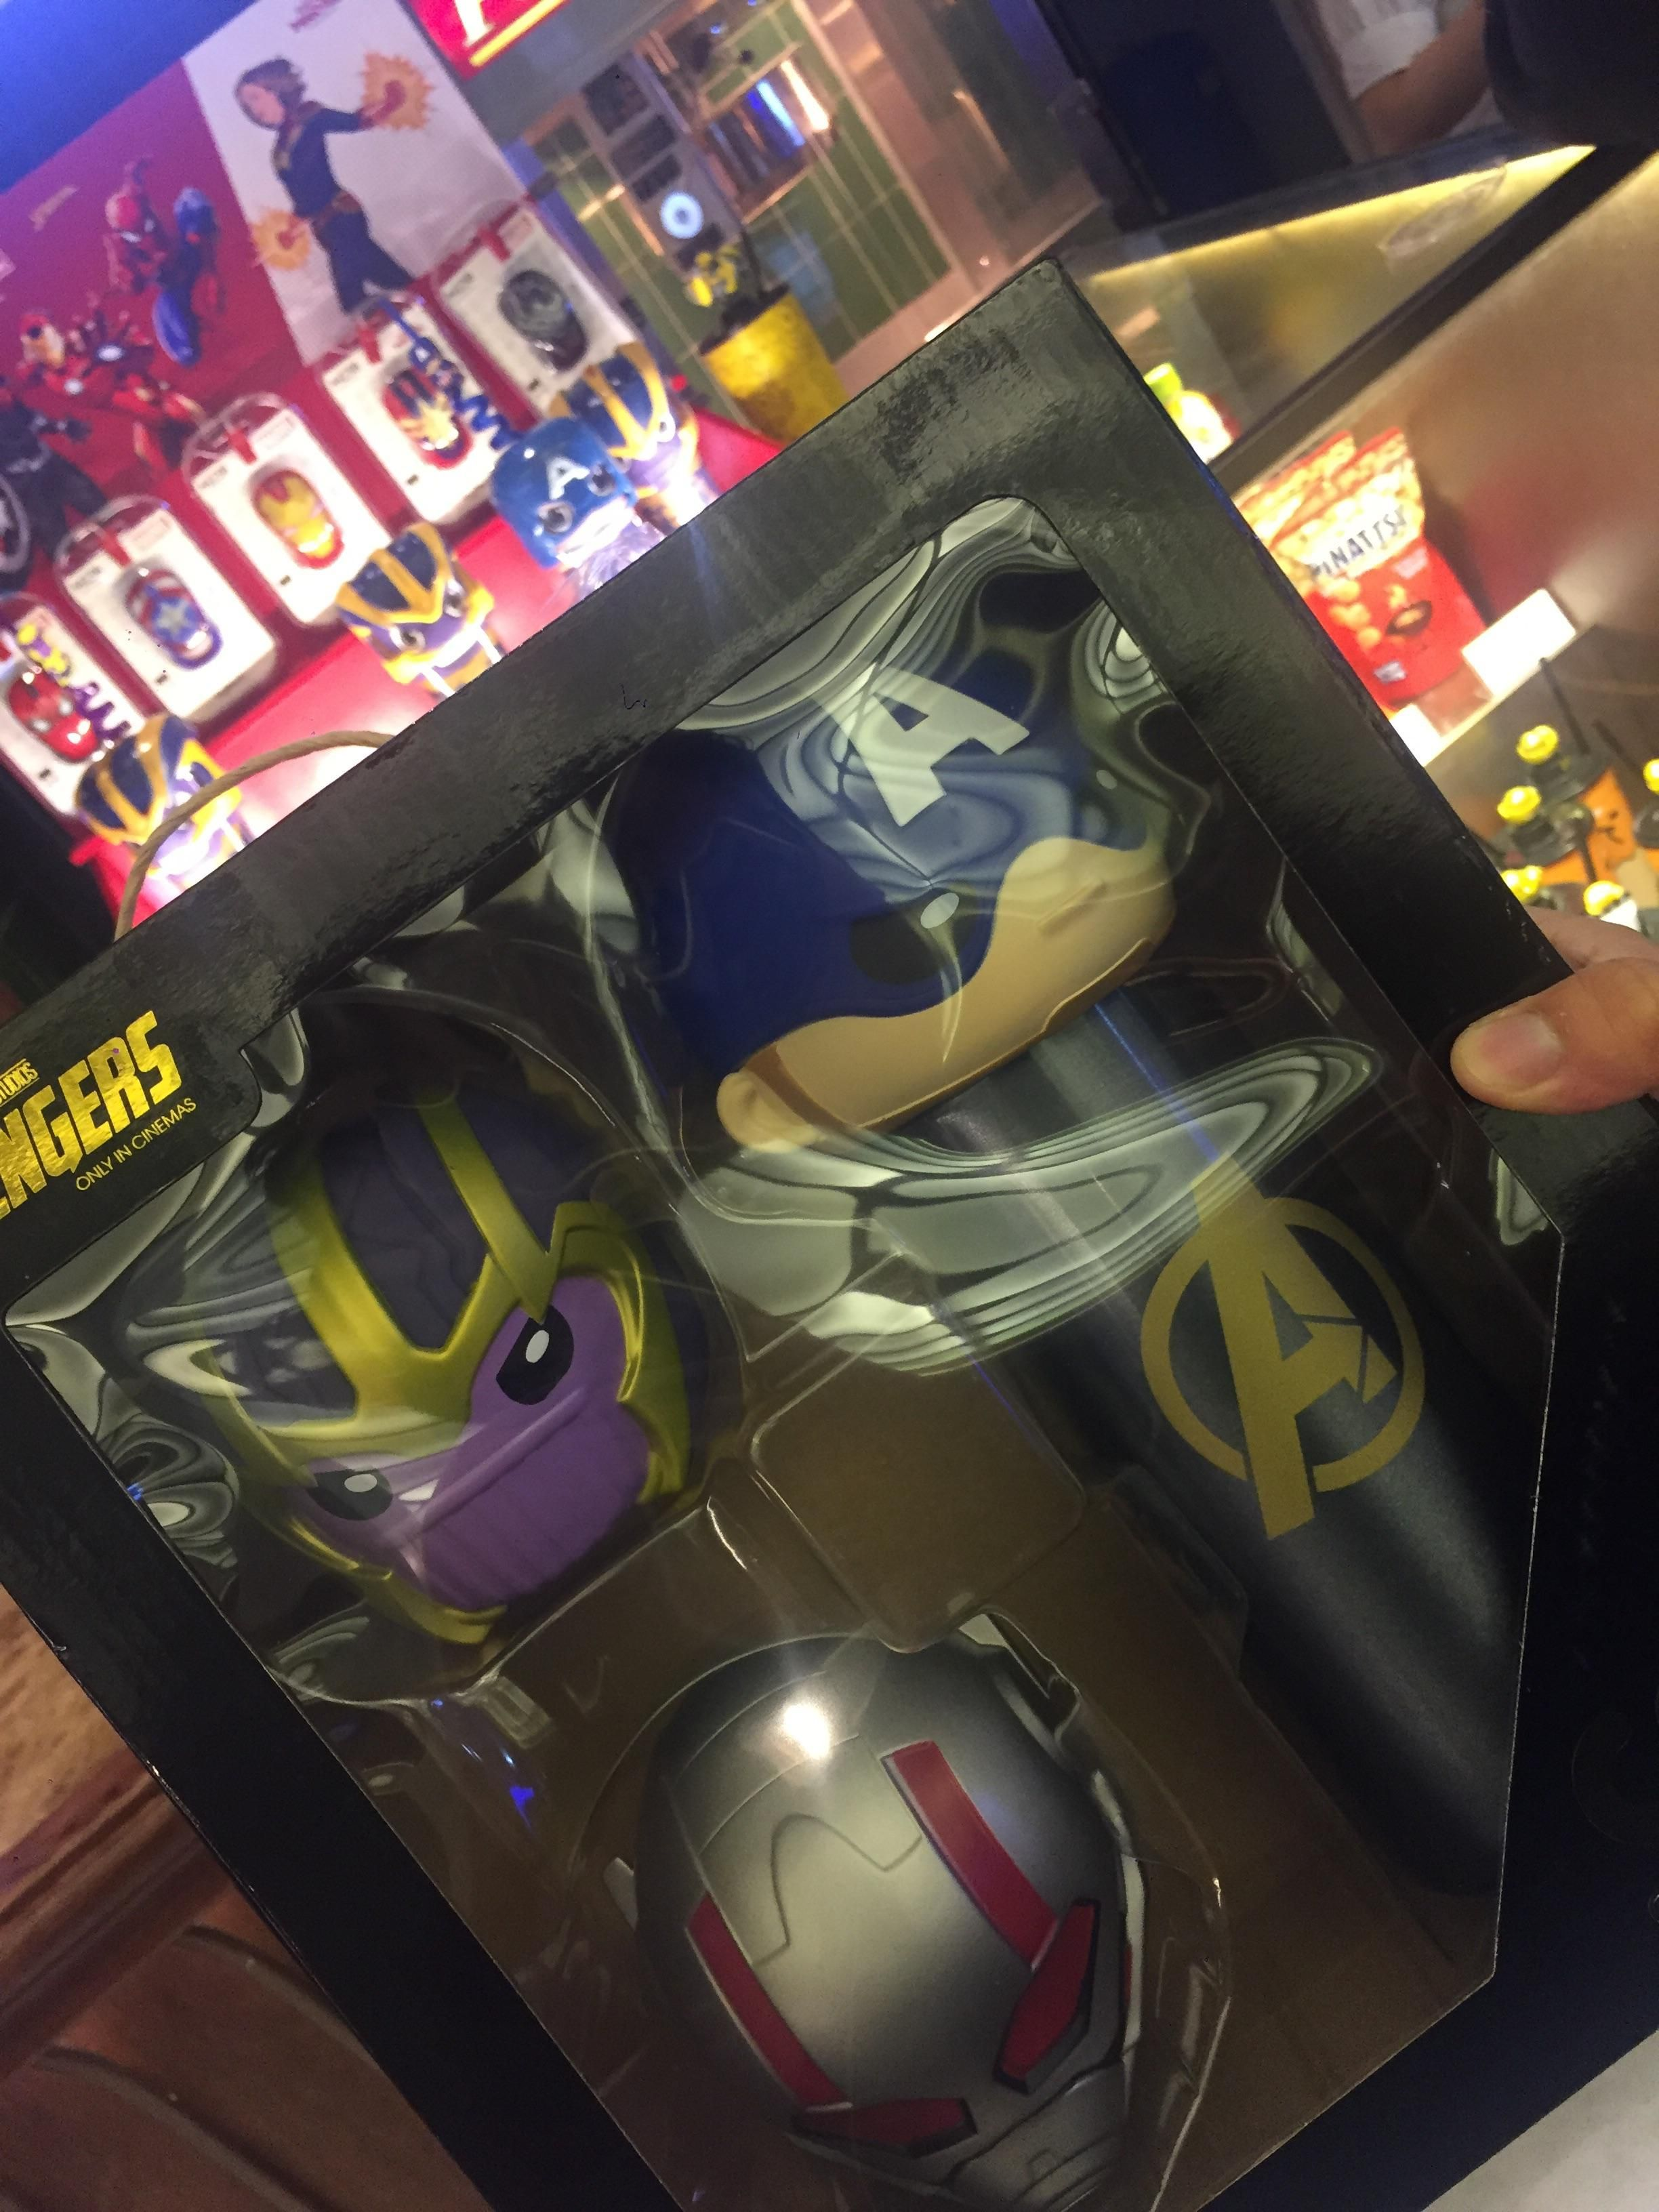 avengers endgame vip giftpack and regular combo at cgv in vietnam